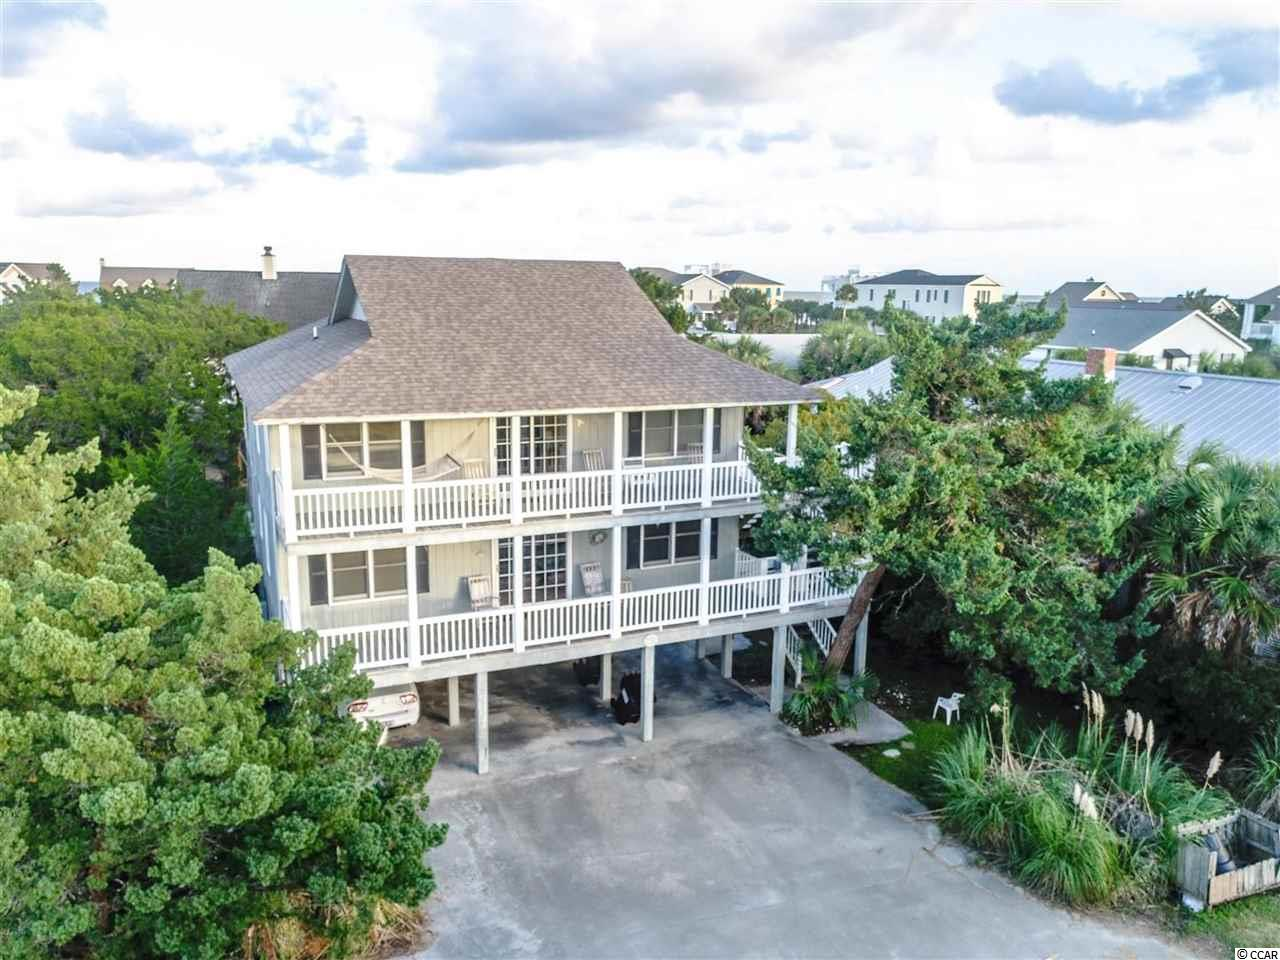 Amazing opportunity to own this Raised Beach Home on the island with views of Pawleys Creek ! The upstairs top level includes a full living area, kitchen, 2 bedrooms, and 1.5 baths. Middle level includes a full living area, kitchen, 3 bedrooms, and 2 full baths. The kitchens for each level are equipped with all appliances and have access to both back porch areas. Each floor level includes a large front porch and the rear porch. The bottom/ground floor level underneath features a studio apartment with a full bath. Located on the third row from the ocean, this property could be the perfect investment and rented in many different ways. Conveniently situated near all of the famous shopping, dining, and entertainment attractions the area has to offer, and only a few steps to the ocean. Plenty of parking and great porches! Short walk to the landing, which is only a few blocks north and you are just a quick walk away to the beach. Schedule your showing today !